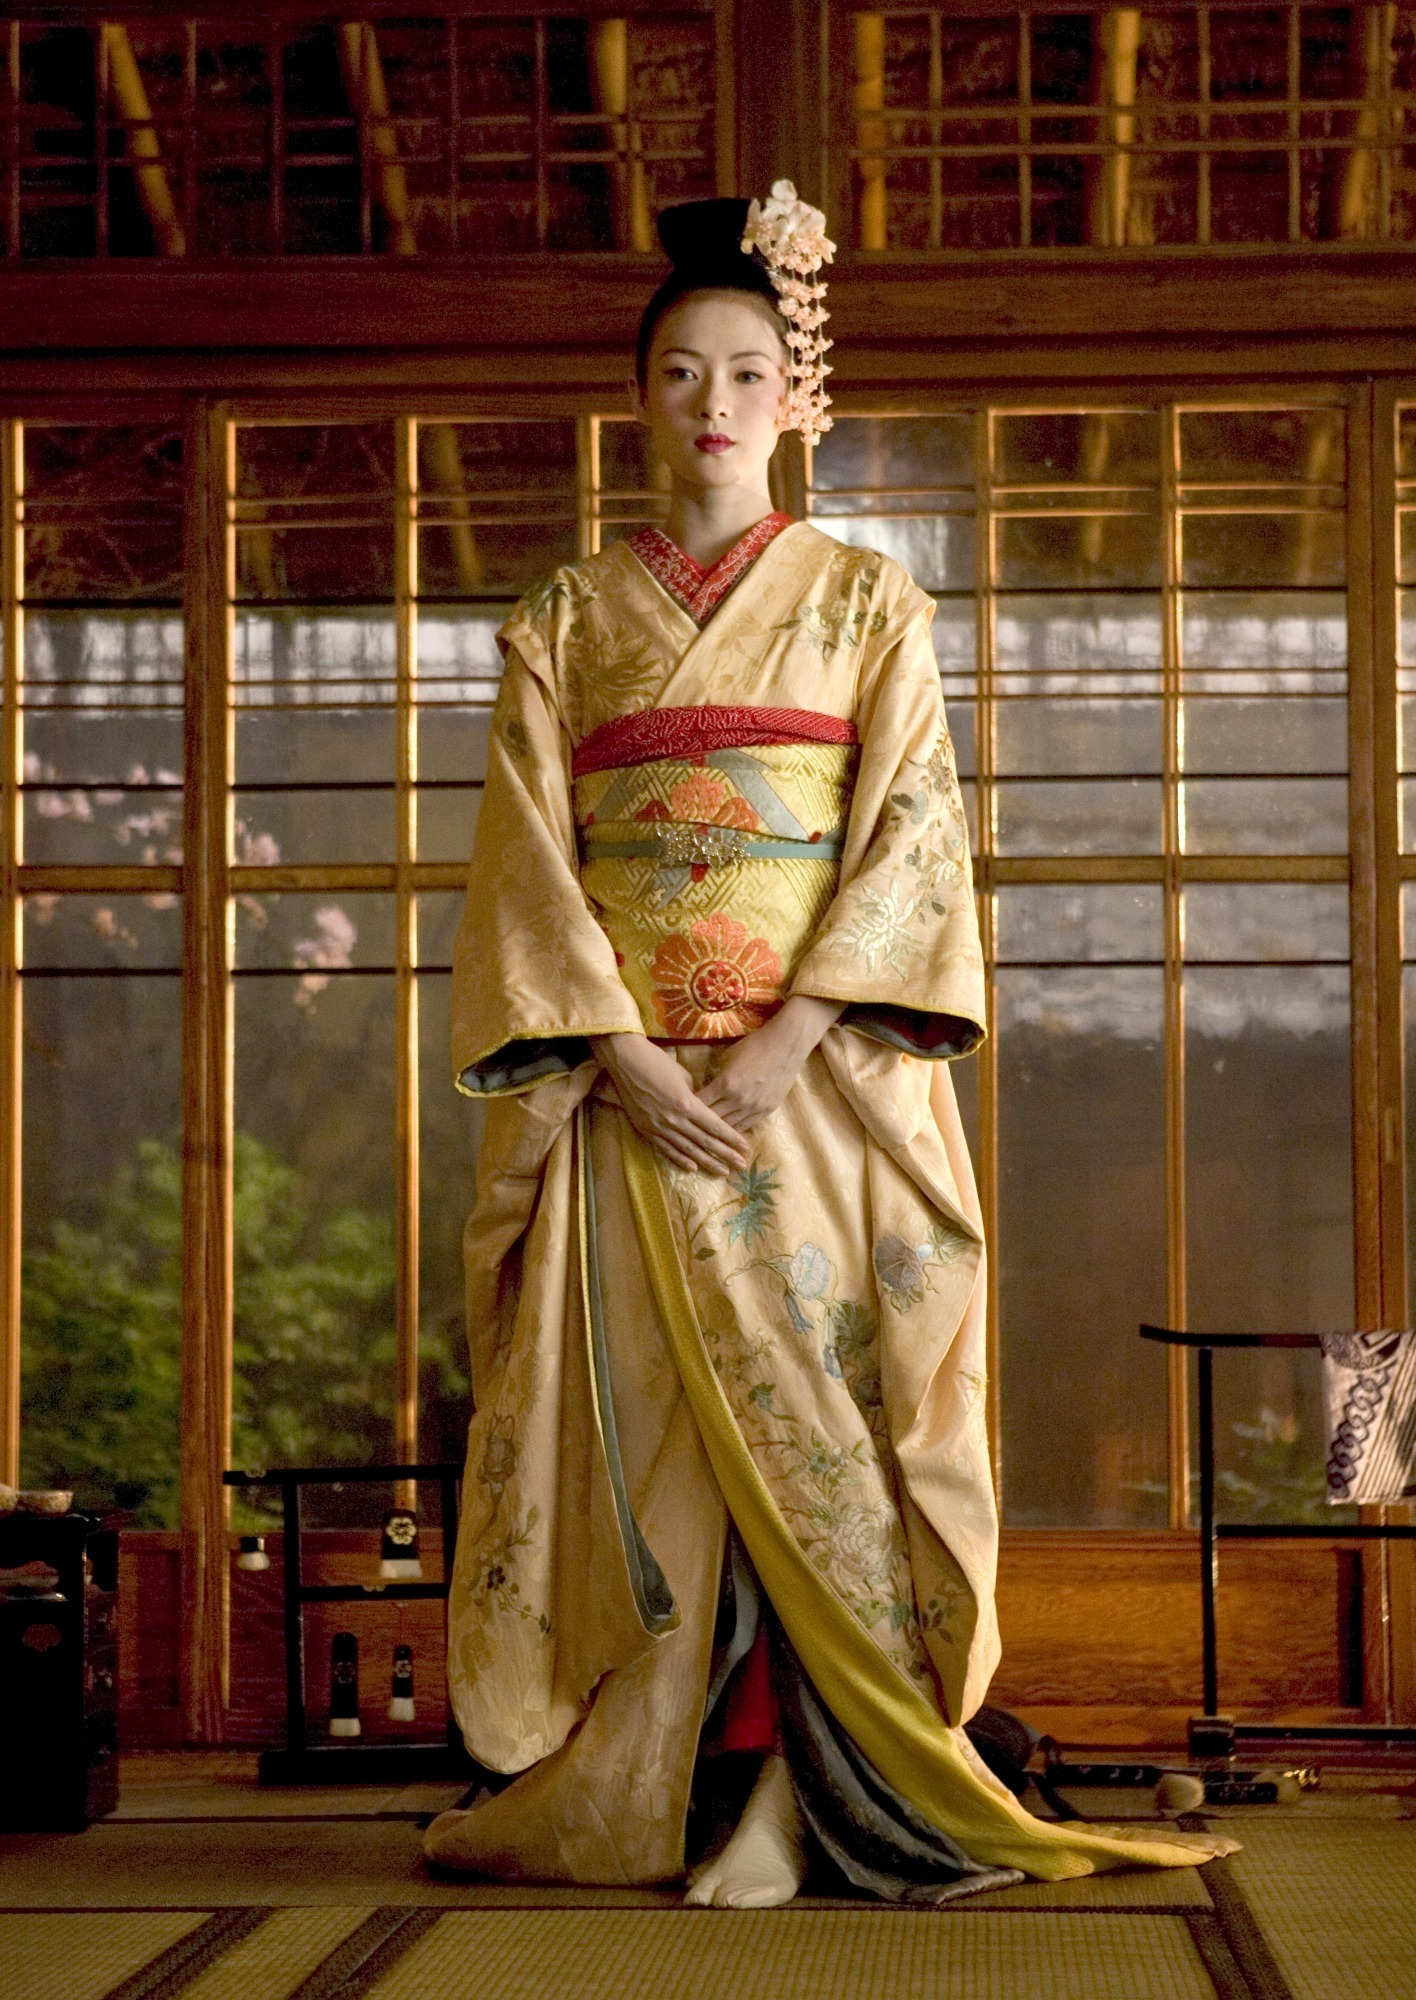 memoirs of a geisha and the Based on the internationally acclaimed novel by arthur golden, memoirs of a geisha is a sweeping romantic epic set in a mysterious and exotic world that still casts a potent spell today.